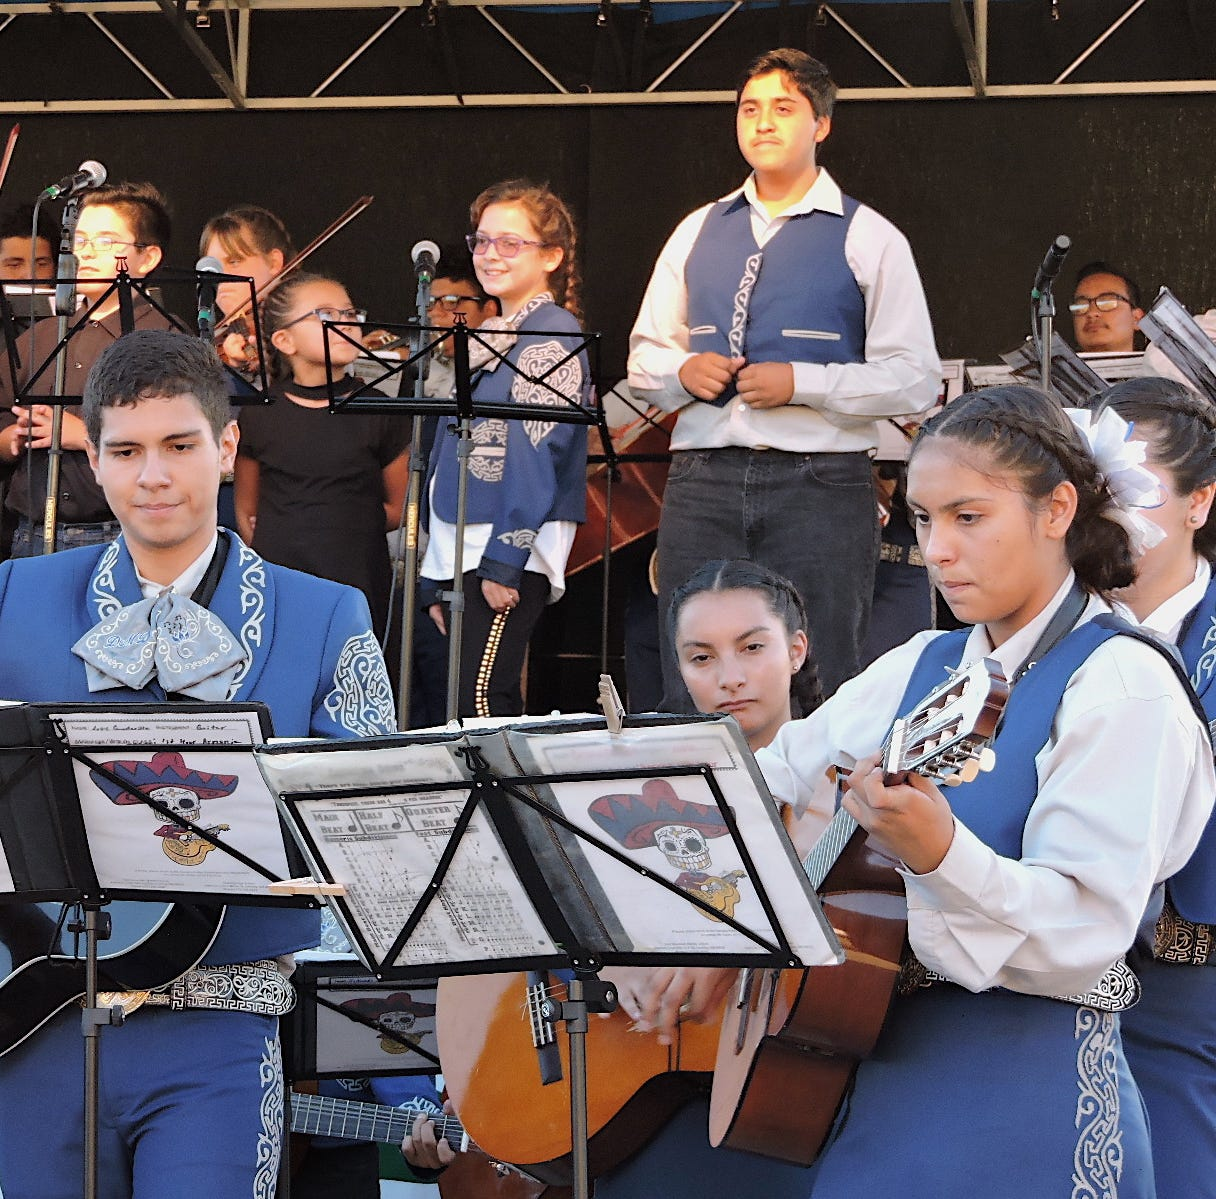 Deming High Mariachis perform at Rockhound State Park, NM